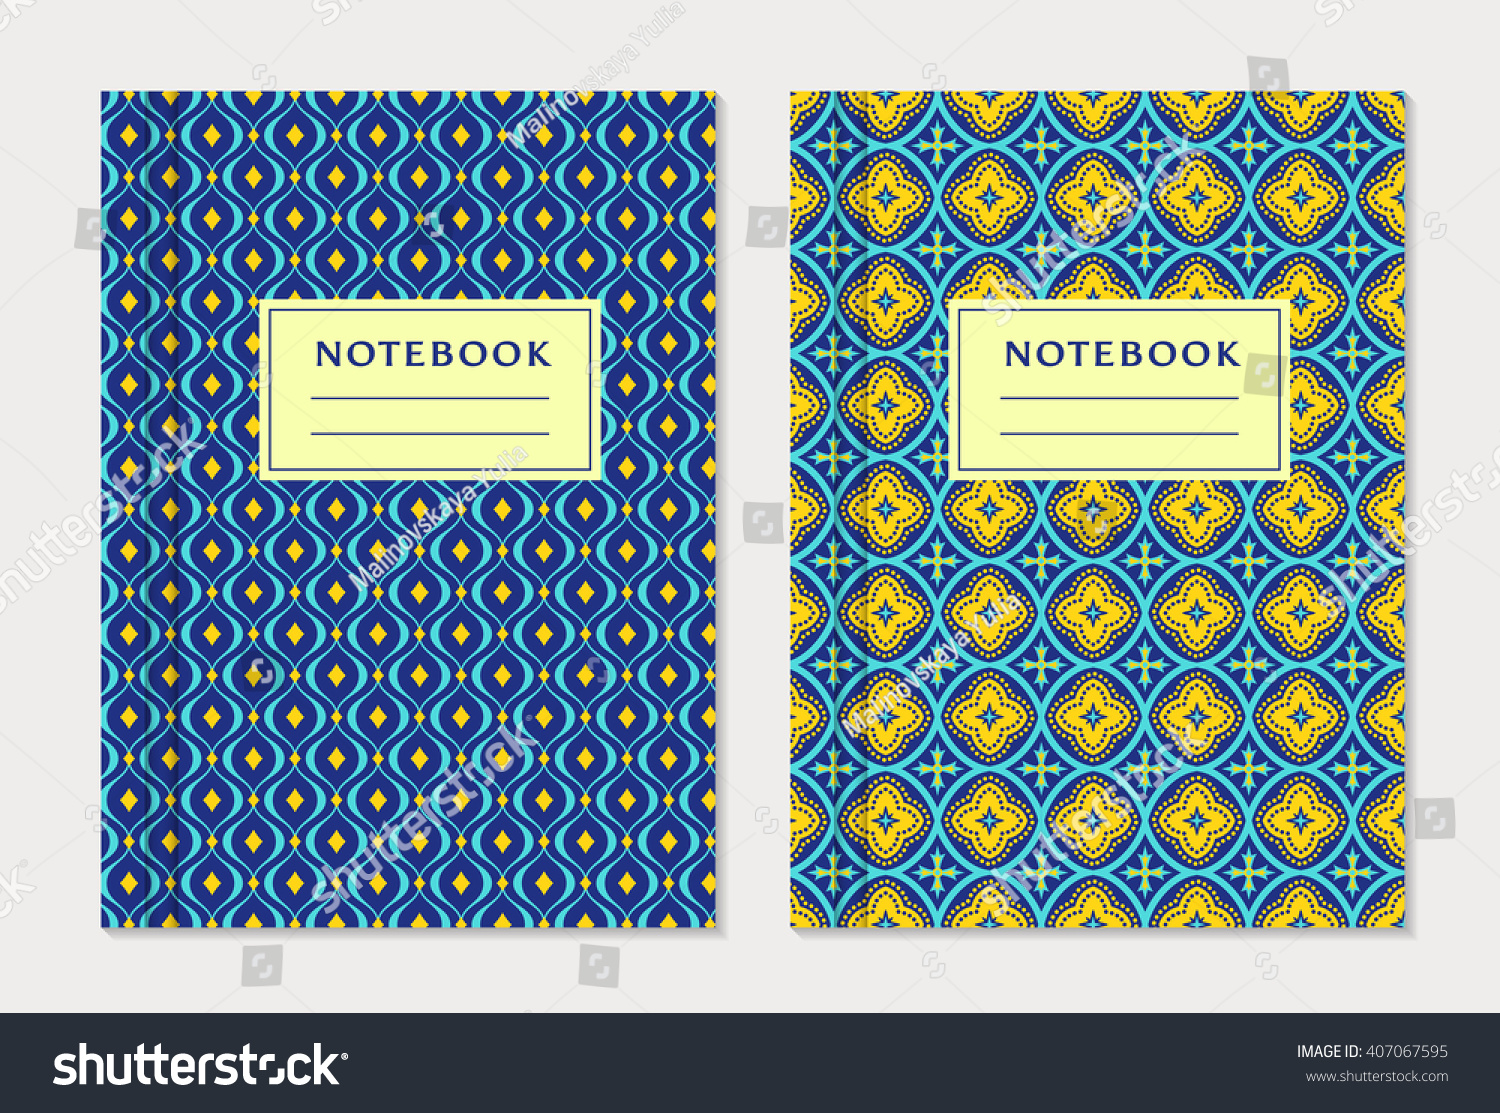 Exercise Book Cover Ideas : Notebook cover designs two exercise books stock vector